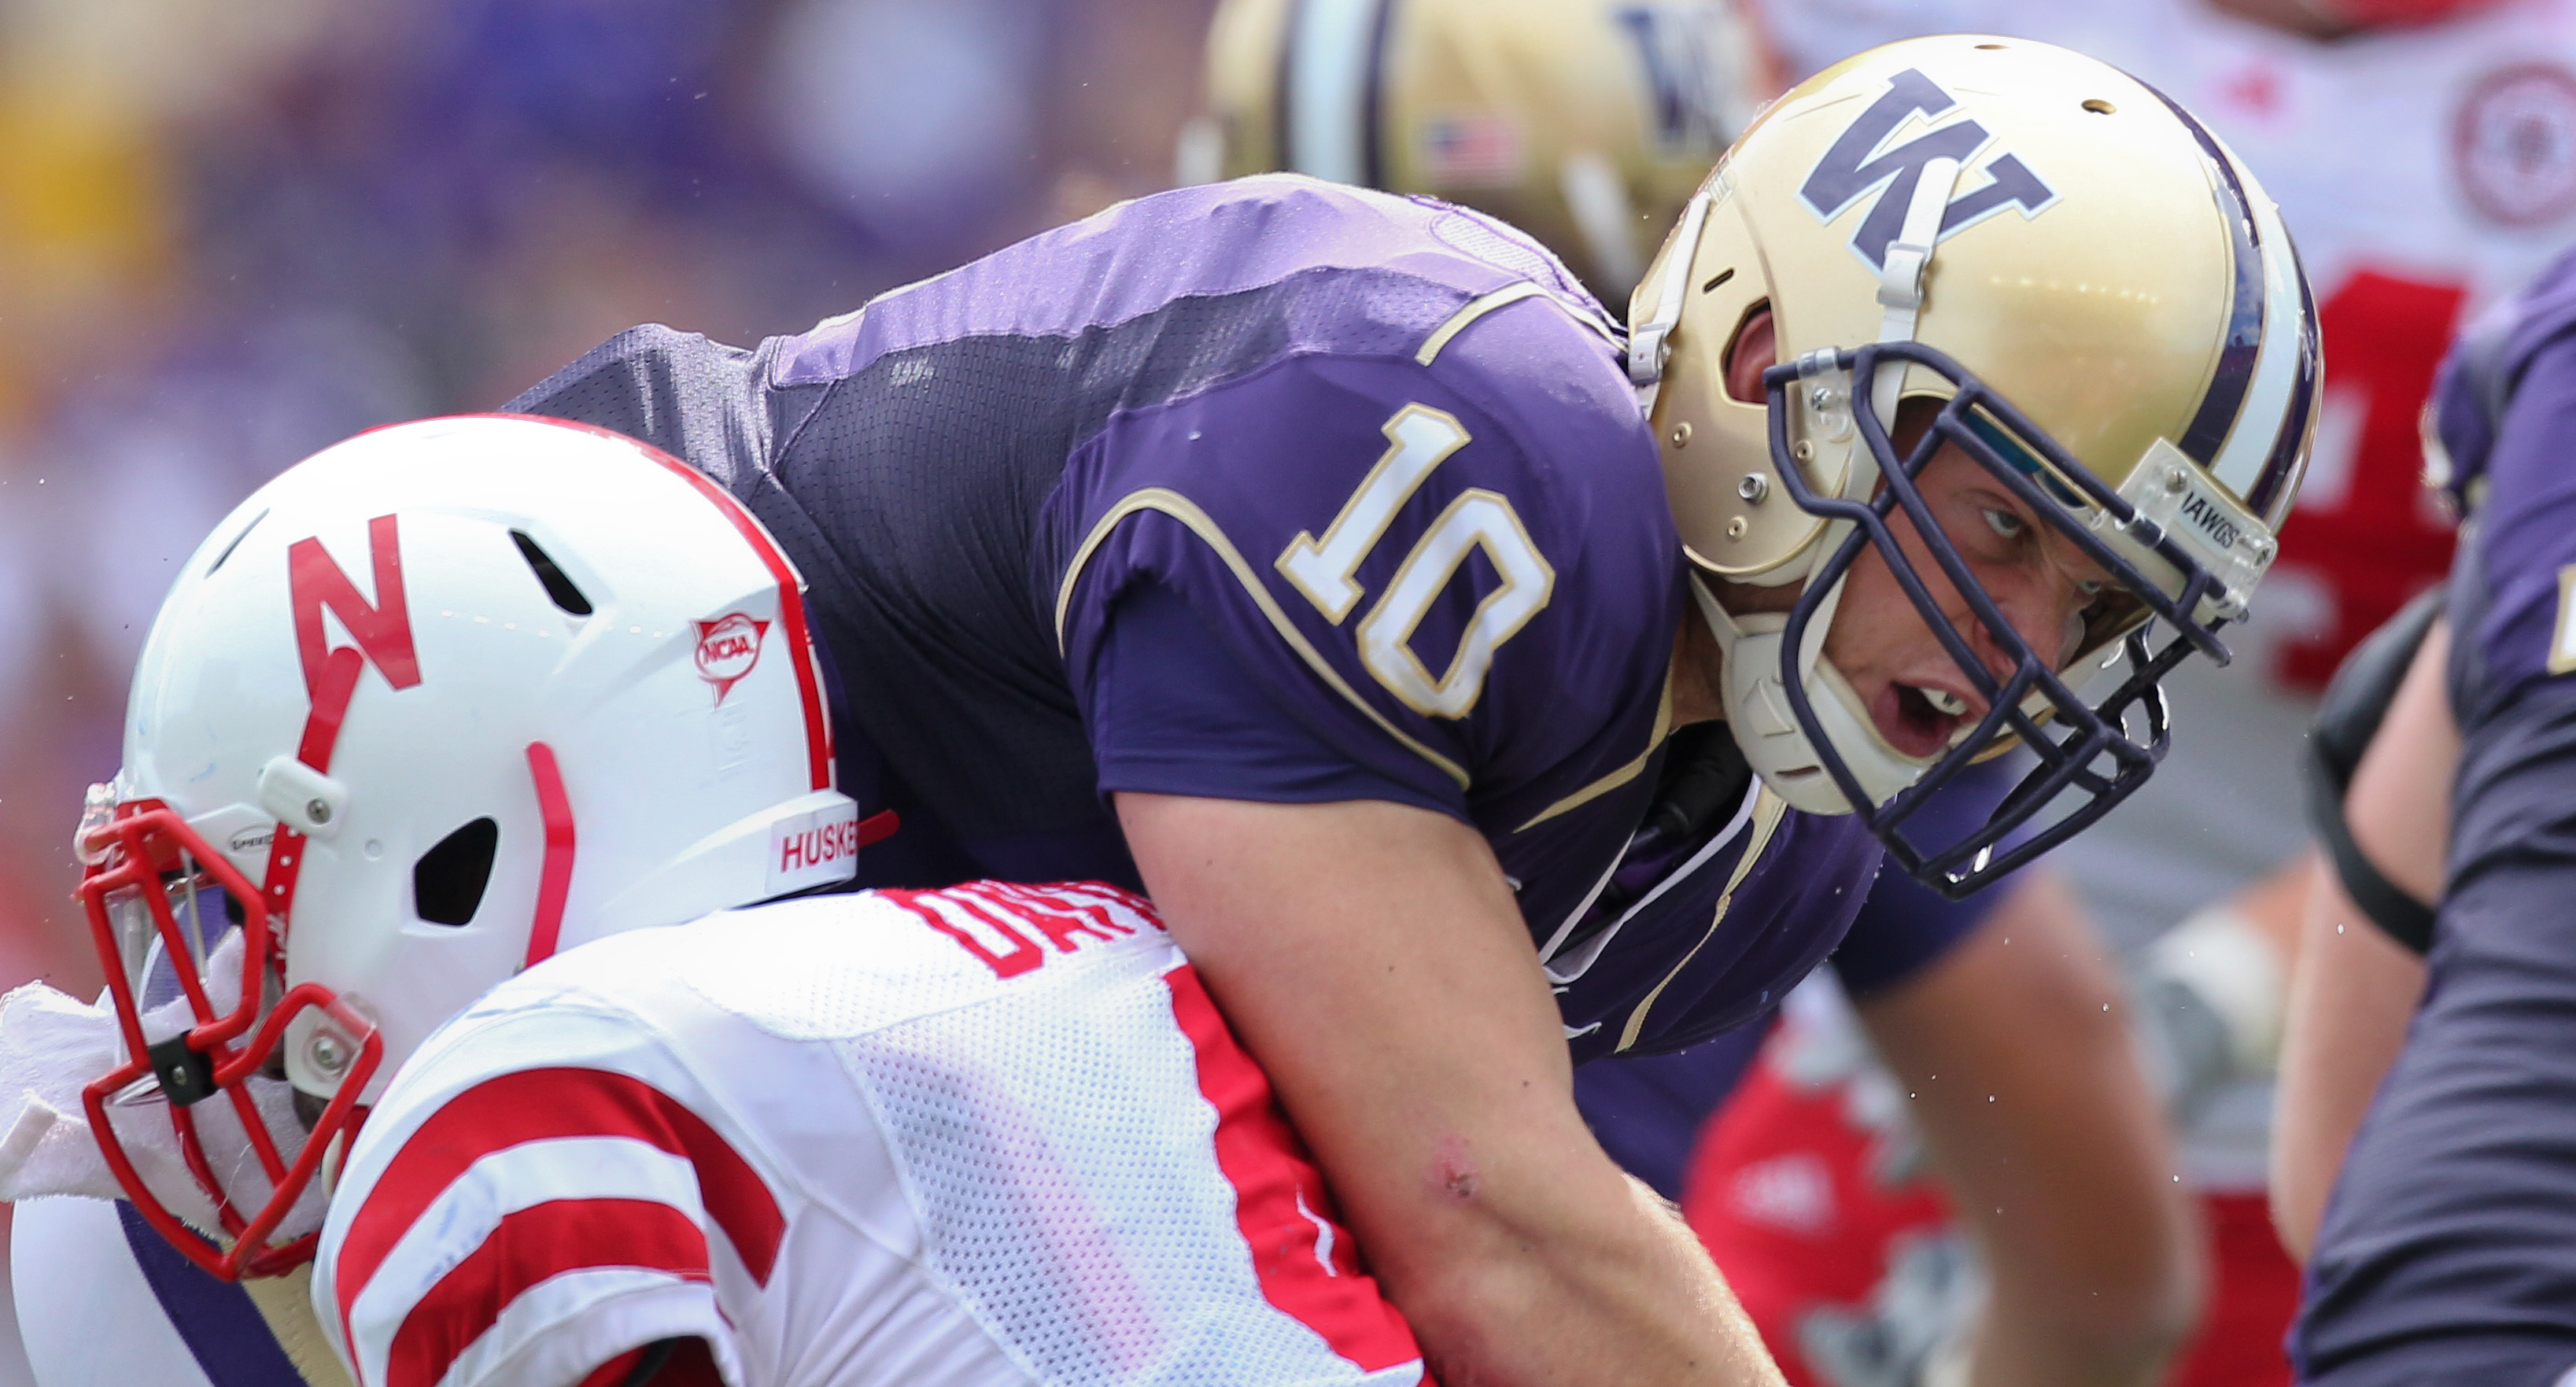 SEATTLE - SEPTEMBER 18: Quarterback Jake Locker #10 of the Washington Huskies is tackled by linebacker Lavonte David #4 of the Nebraska Cornhuskers on September 18, 2010 at Husky Stadium in Seattle, Washington. (Photo by Otto Greule Jr/Getty Images)